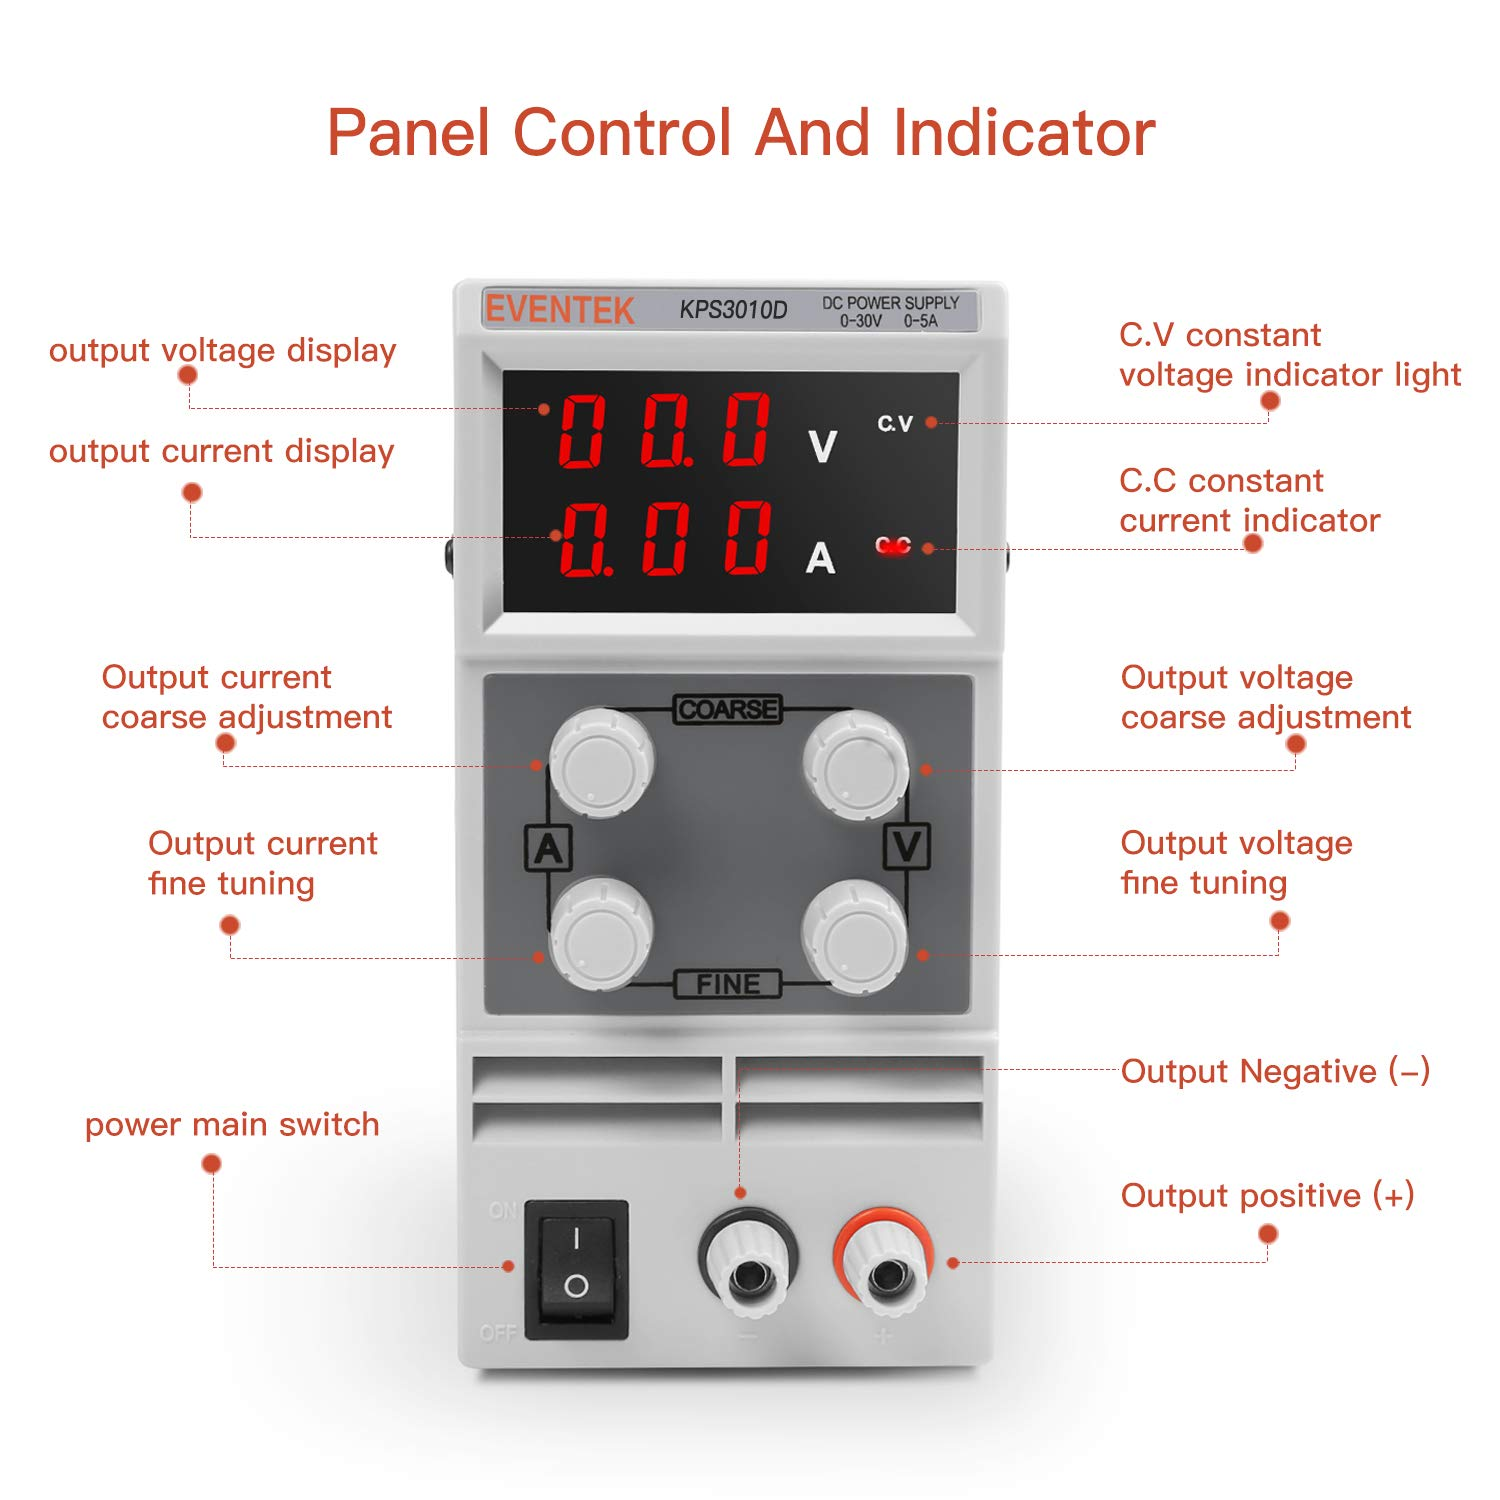 Dc Power Supply Variable 0 30 V 10 A Eventek Kps3010d Circuit Ac Line Powered Led Pilot Light Circuits Designed By David Adjustable Switching Regulated Digital With Alligator Leads Us Cord Used For